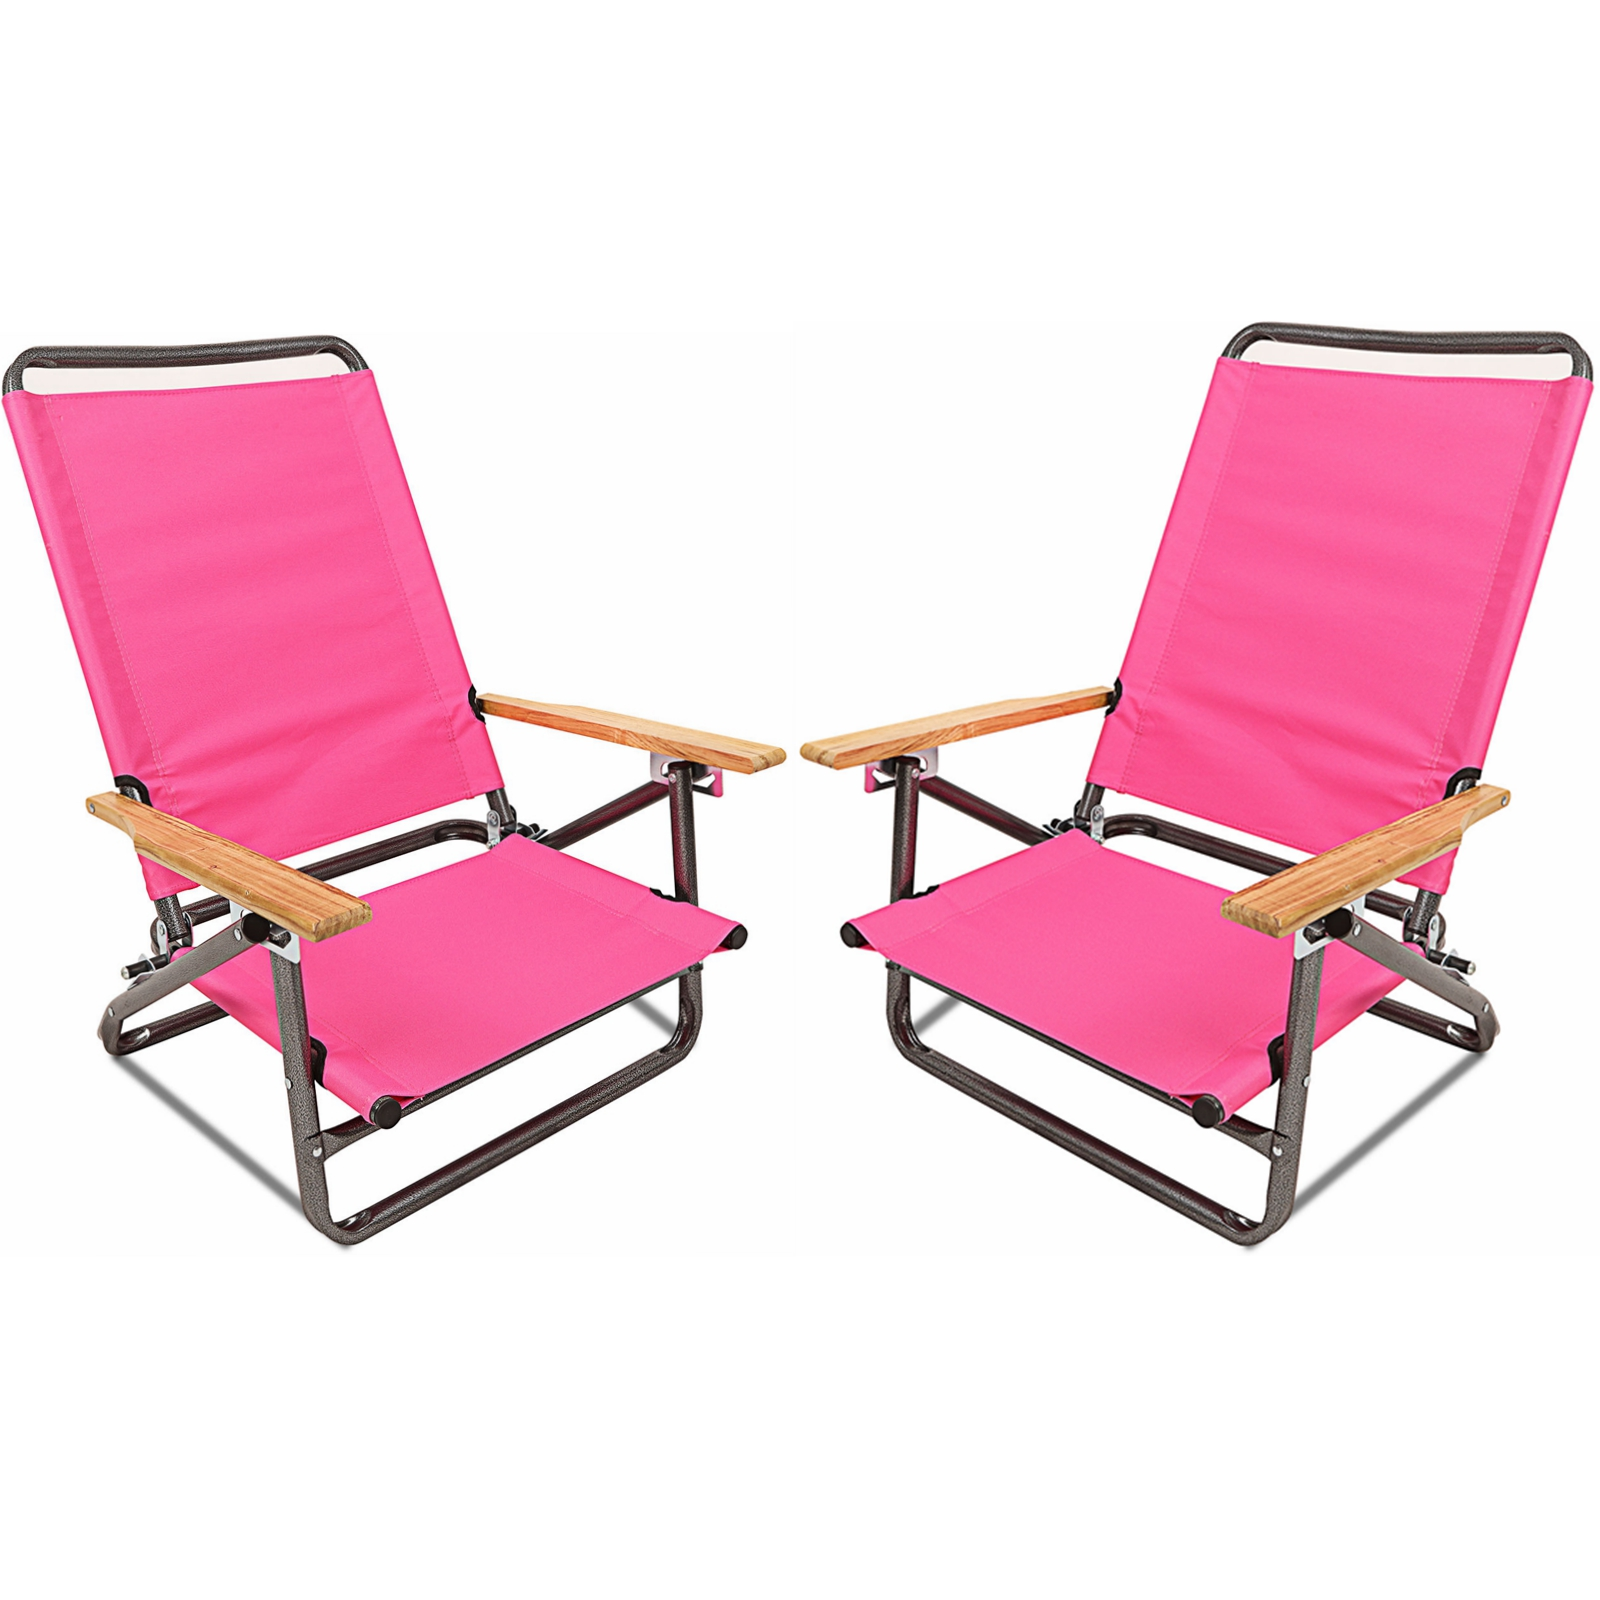 Deluxe 3-position Lightweight Beach Chair Camping Hiking Chair With Wooden Armrest Set of 2 Coffee Stripe